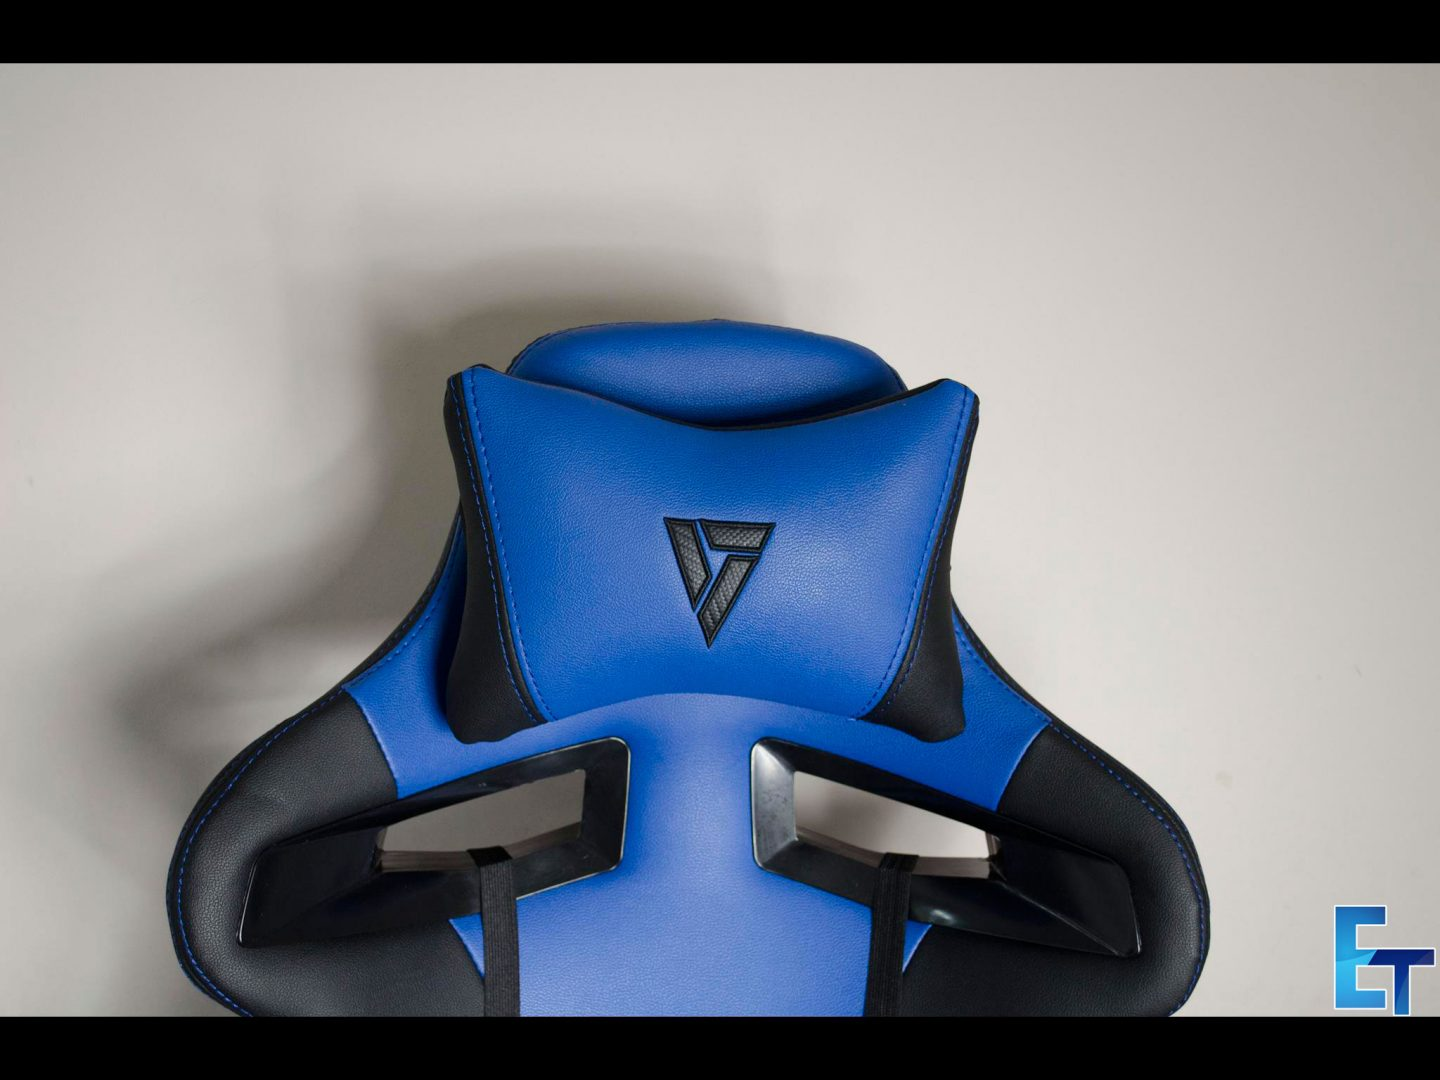 Vertagear-SL4000-Gaming-Chari-Review_11